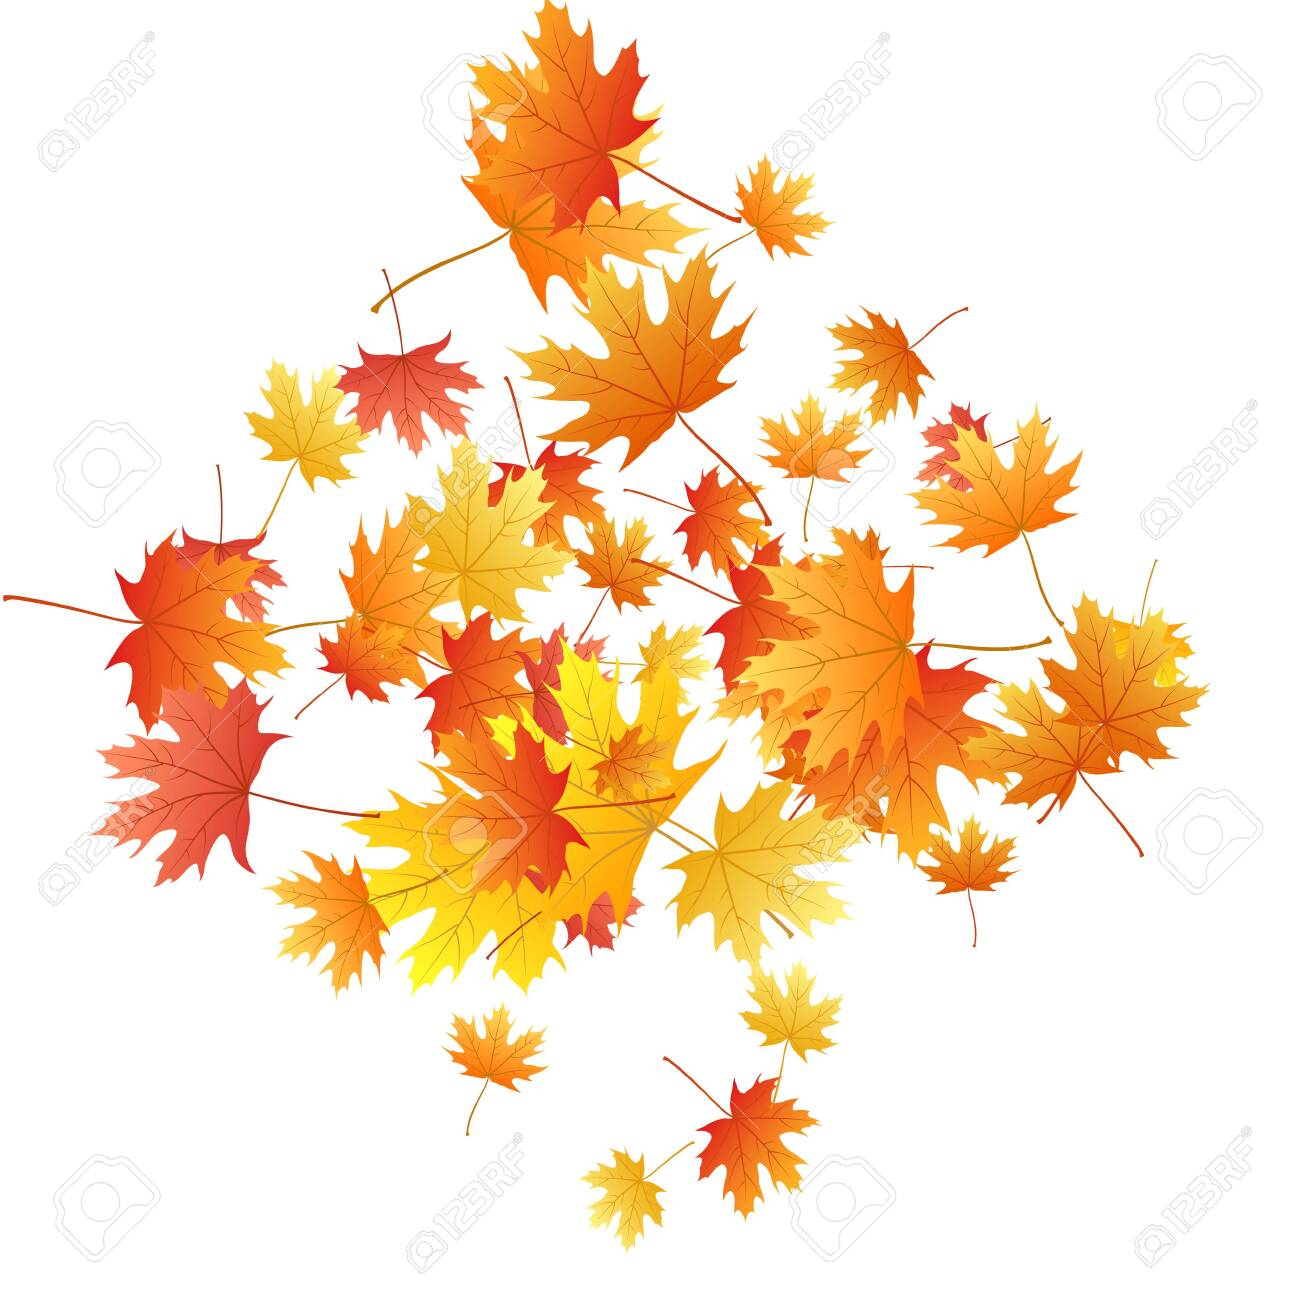 Maple leaves vector background, autumn foliage on white graphic design. Canadian symbol maple red yellow gold dry autumn leaves. Fancy tree foliage vector october season specific background. - 134780939